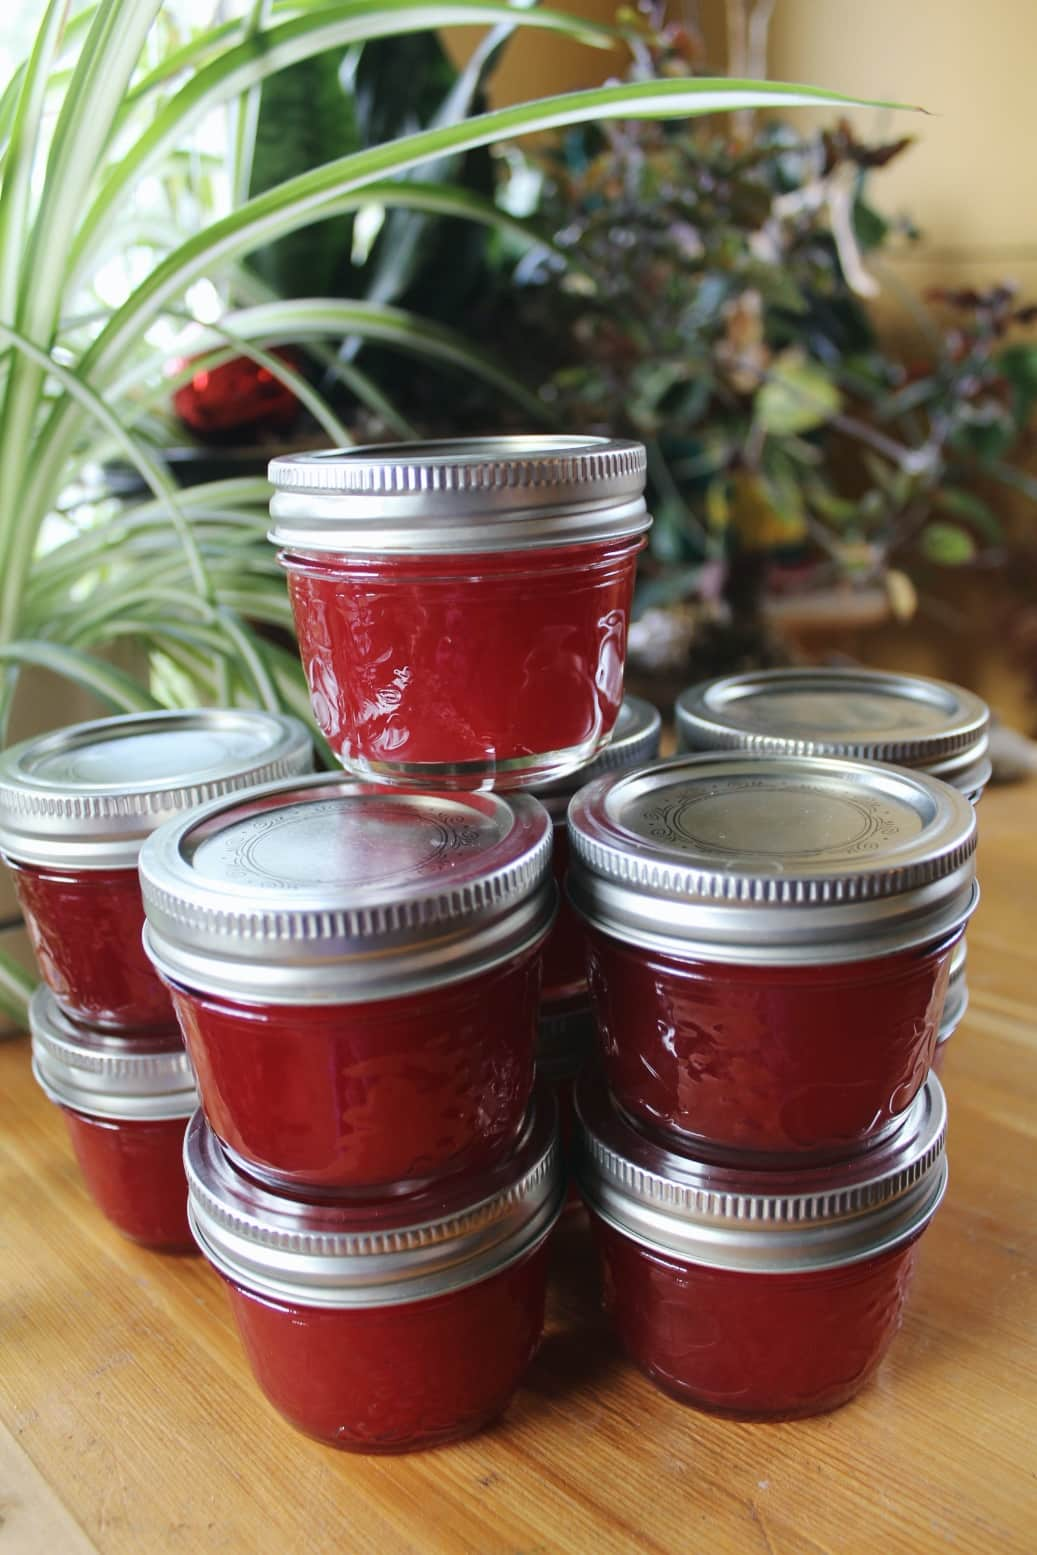 Highbush cranberry jelly in small jars